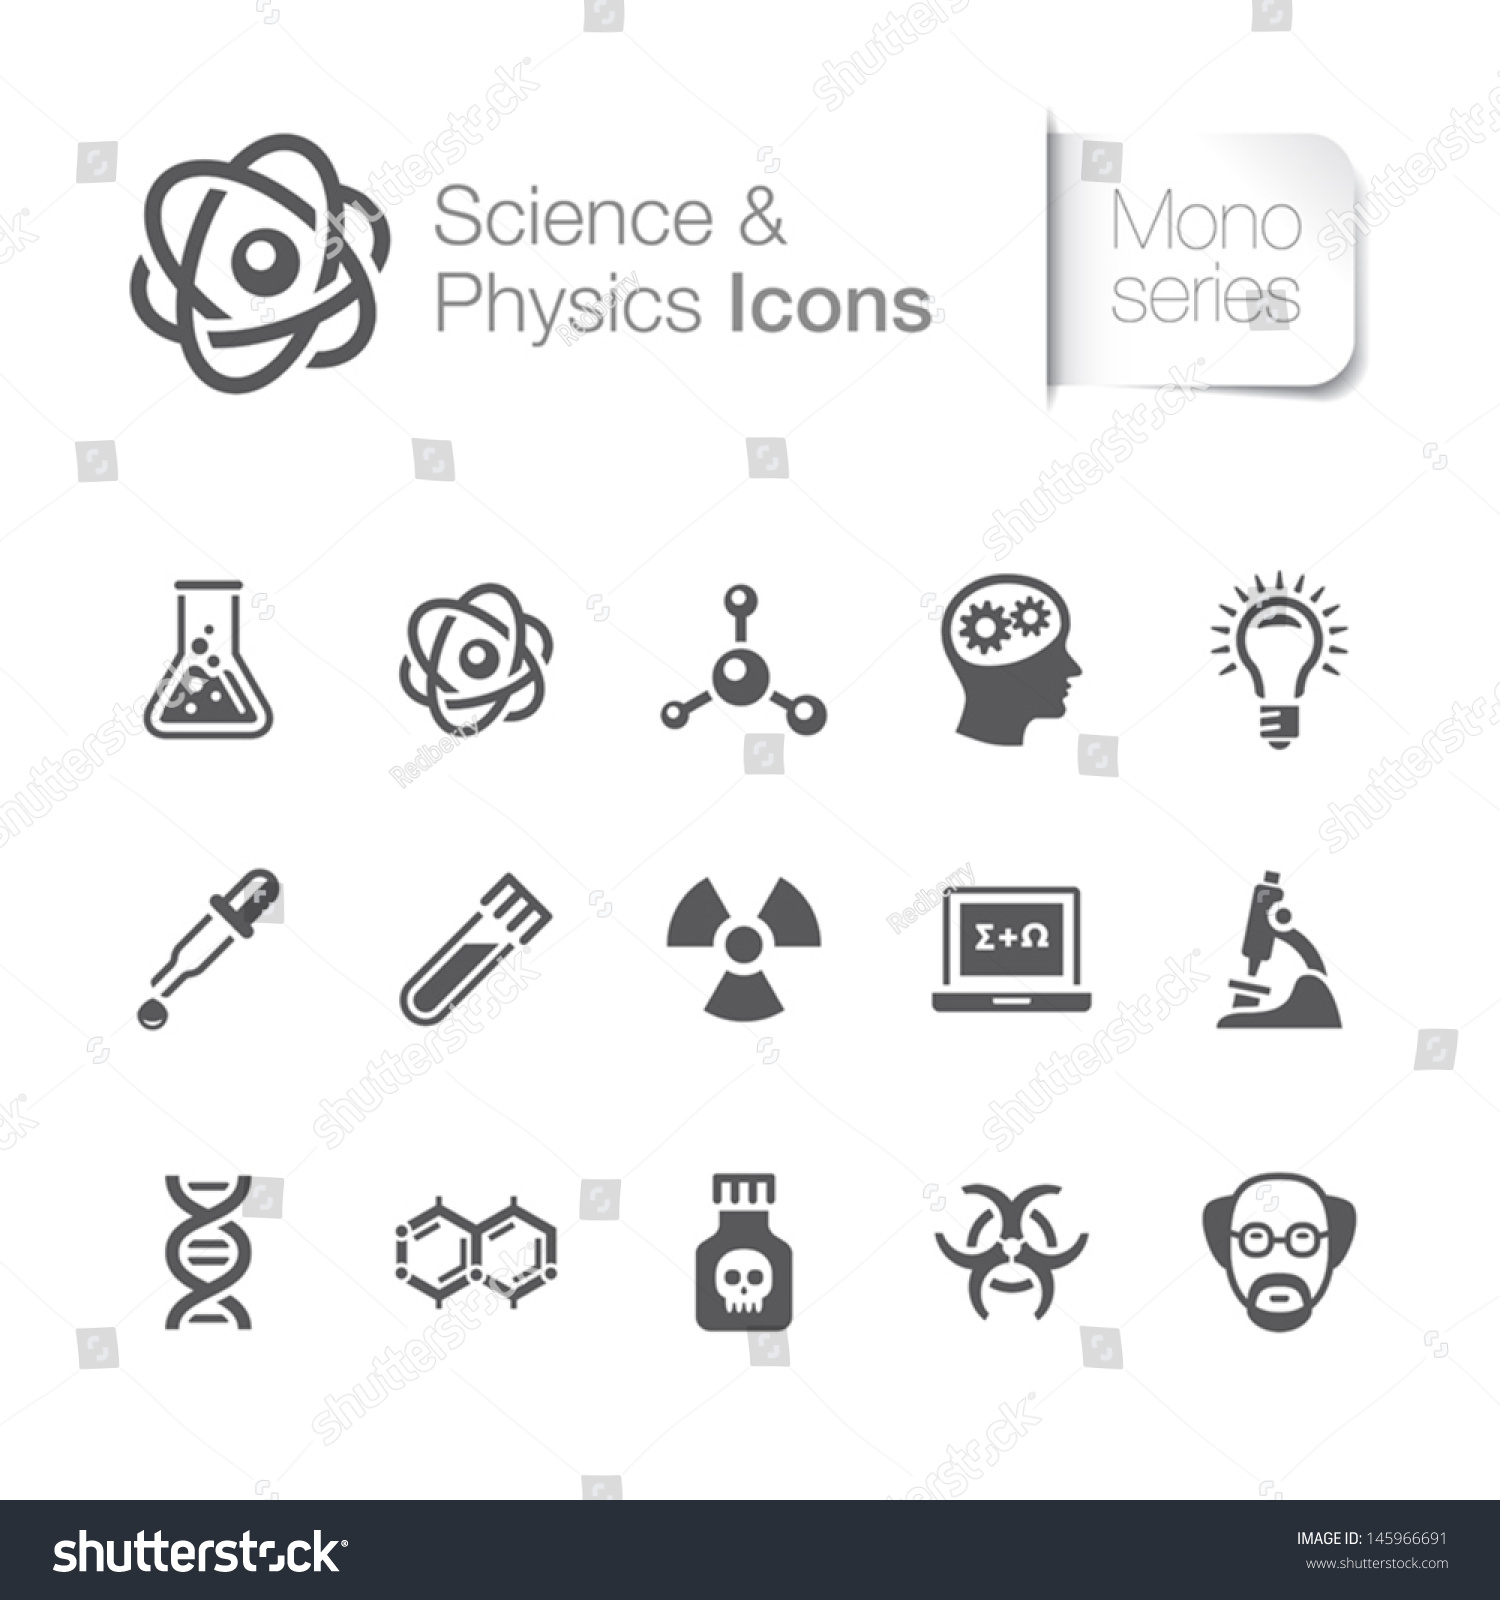 Science Physics From: Science & Physics Related Icons Stock Vector Illustration